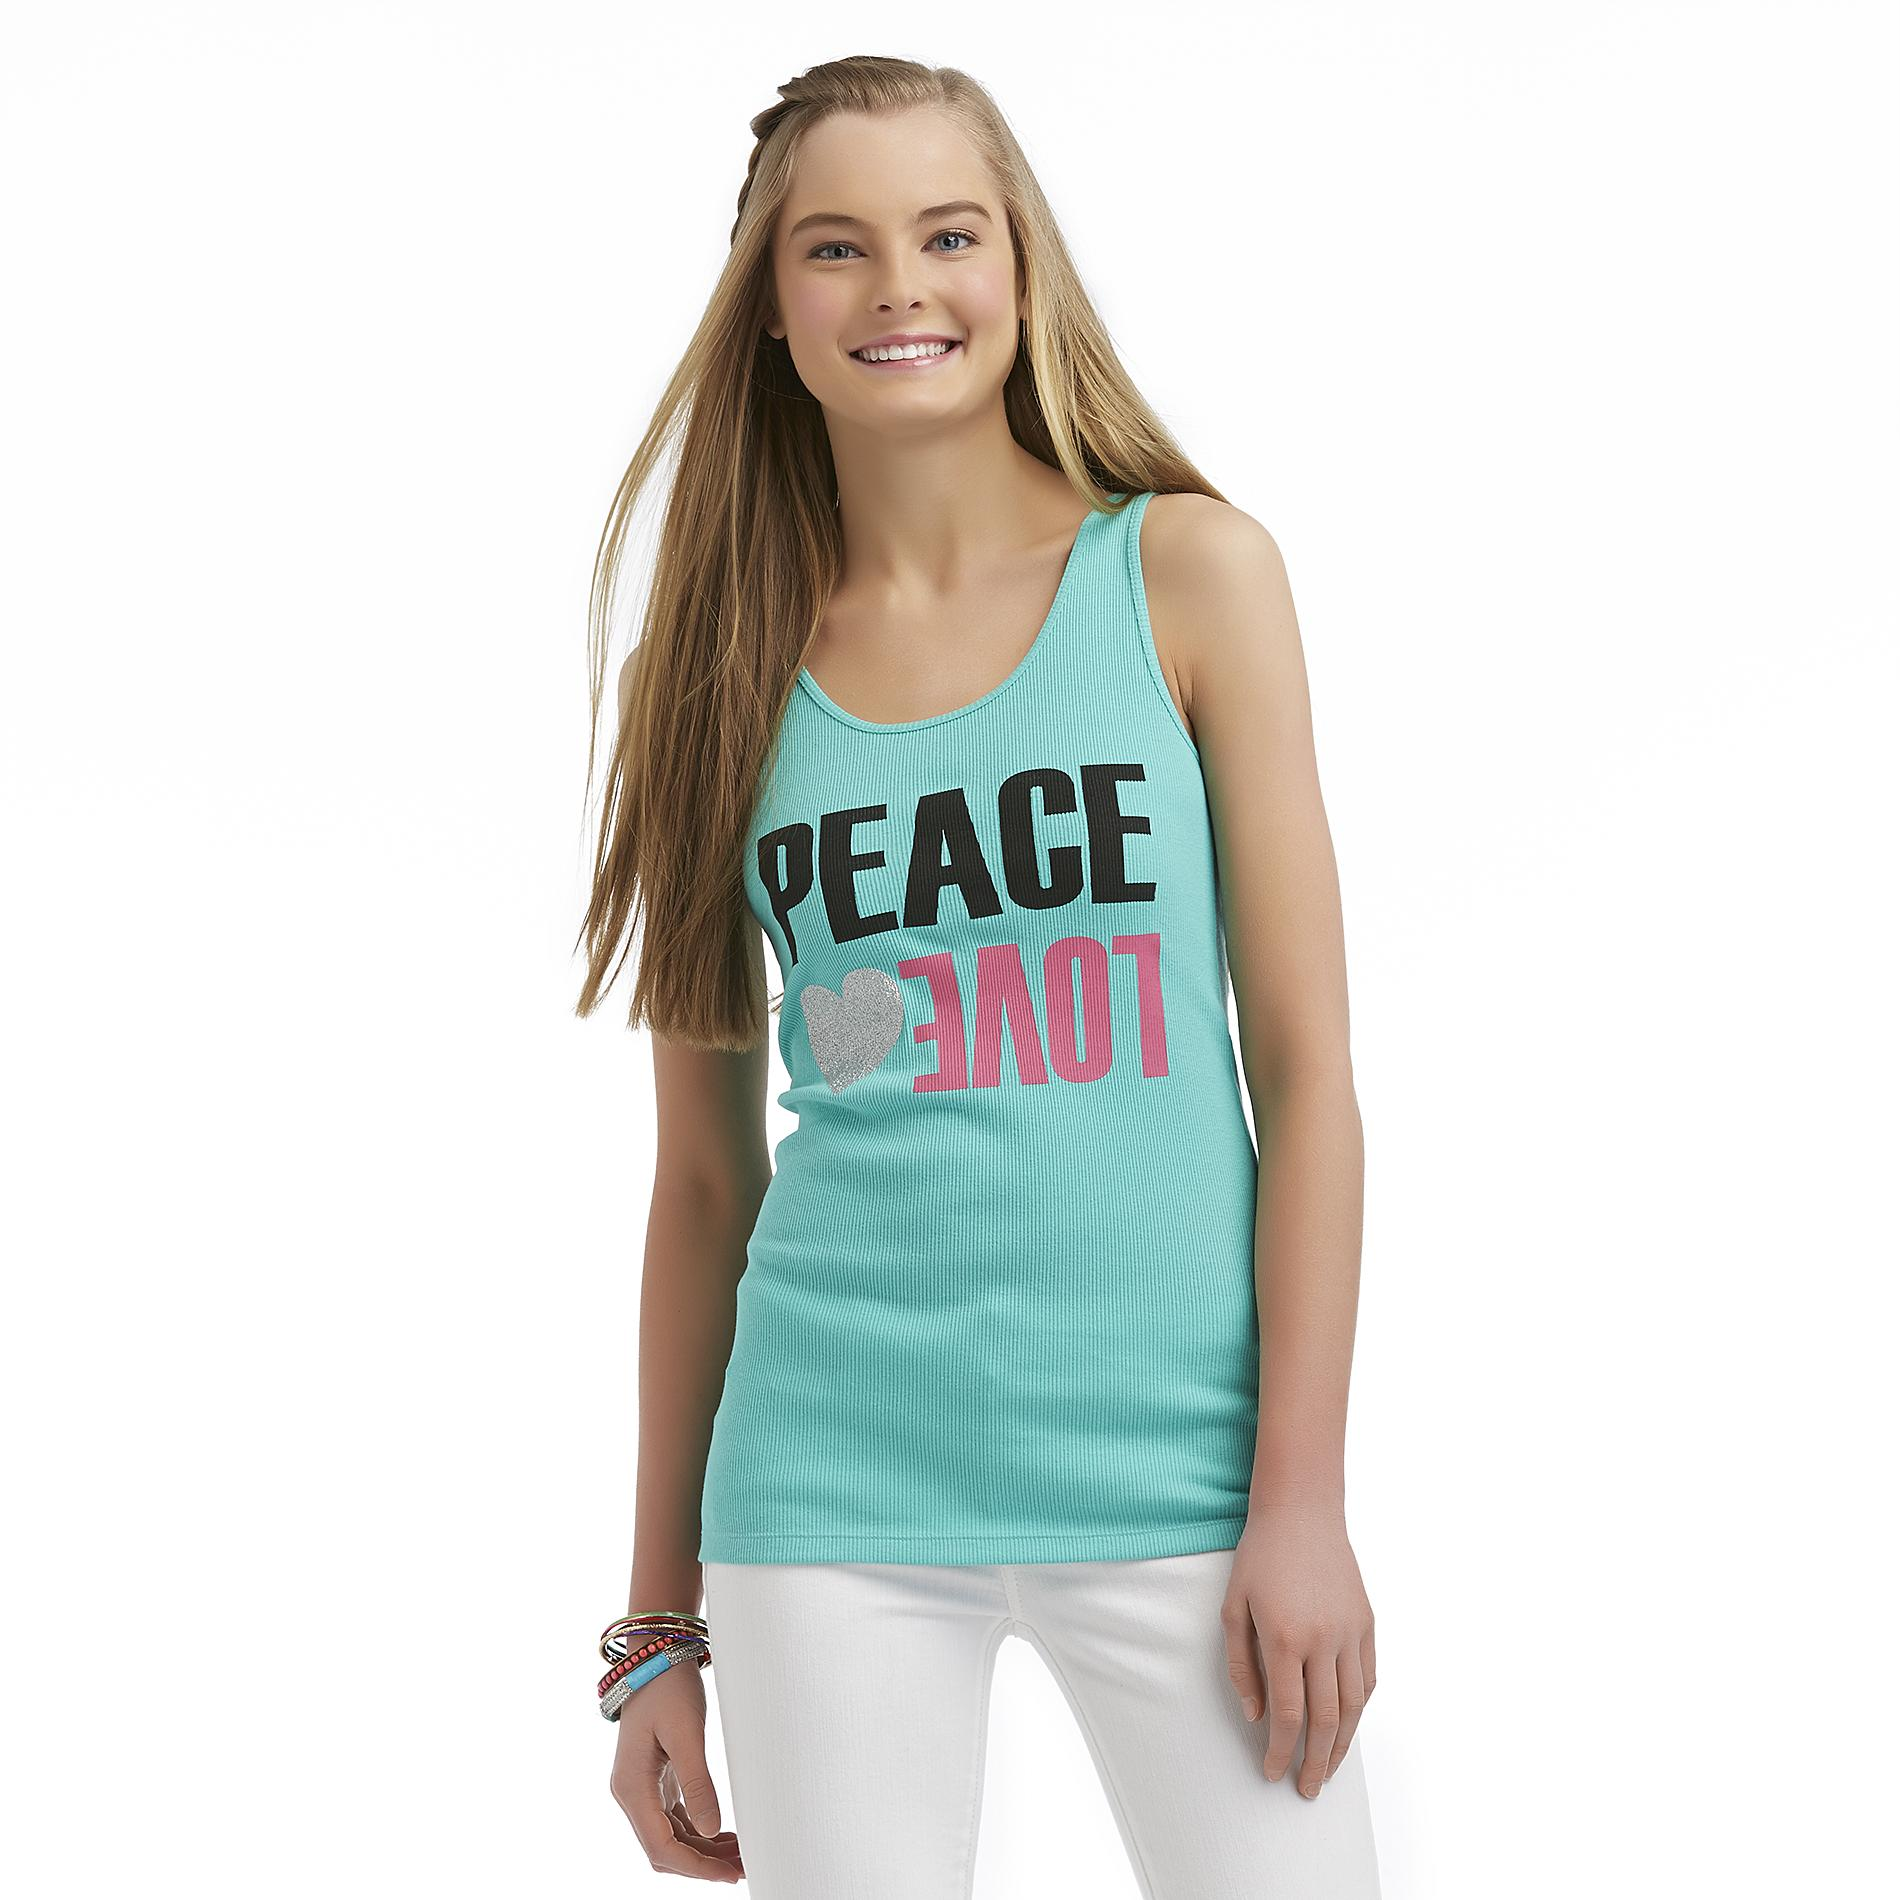 Joe by Joe Boxer Women's Graphic Tank Top - Peace & Love at Sears.com